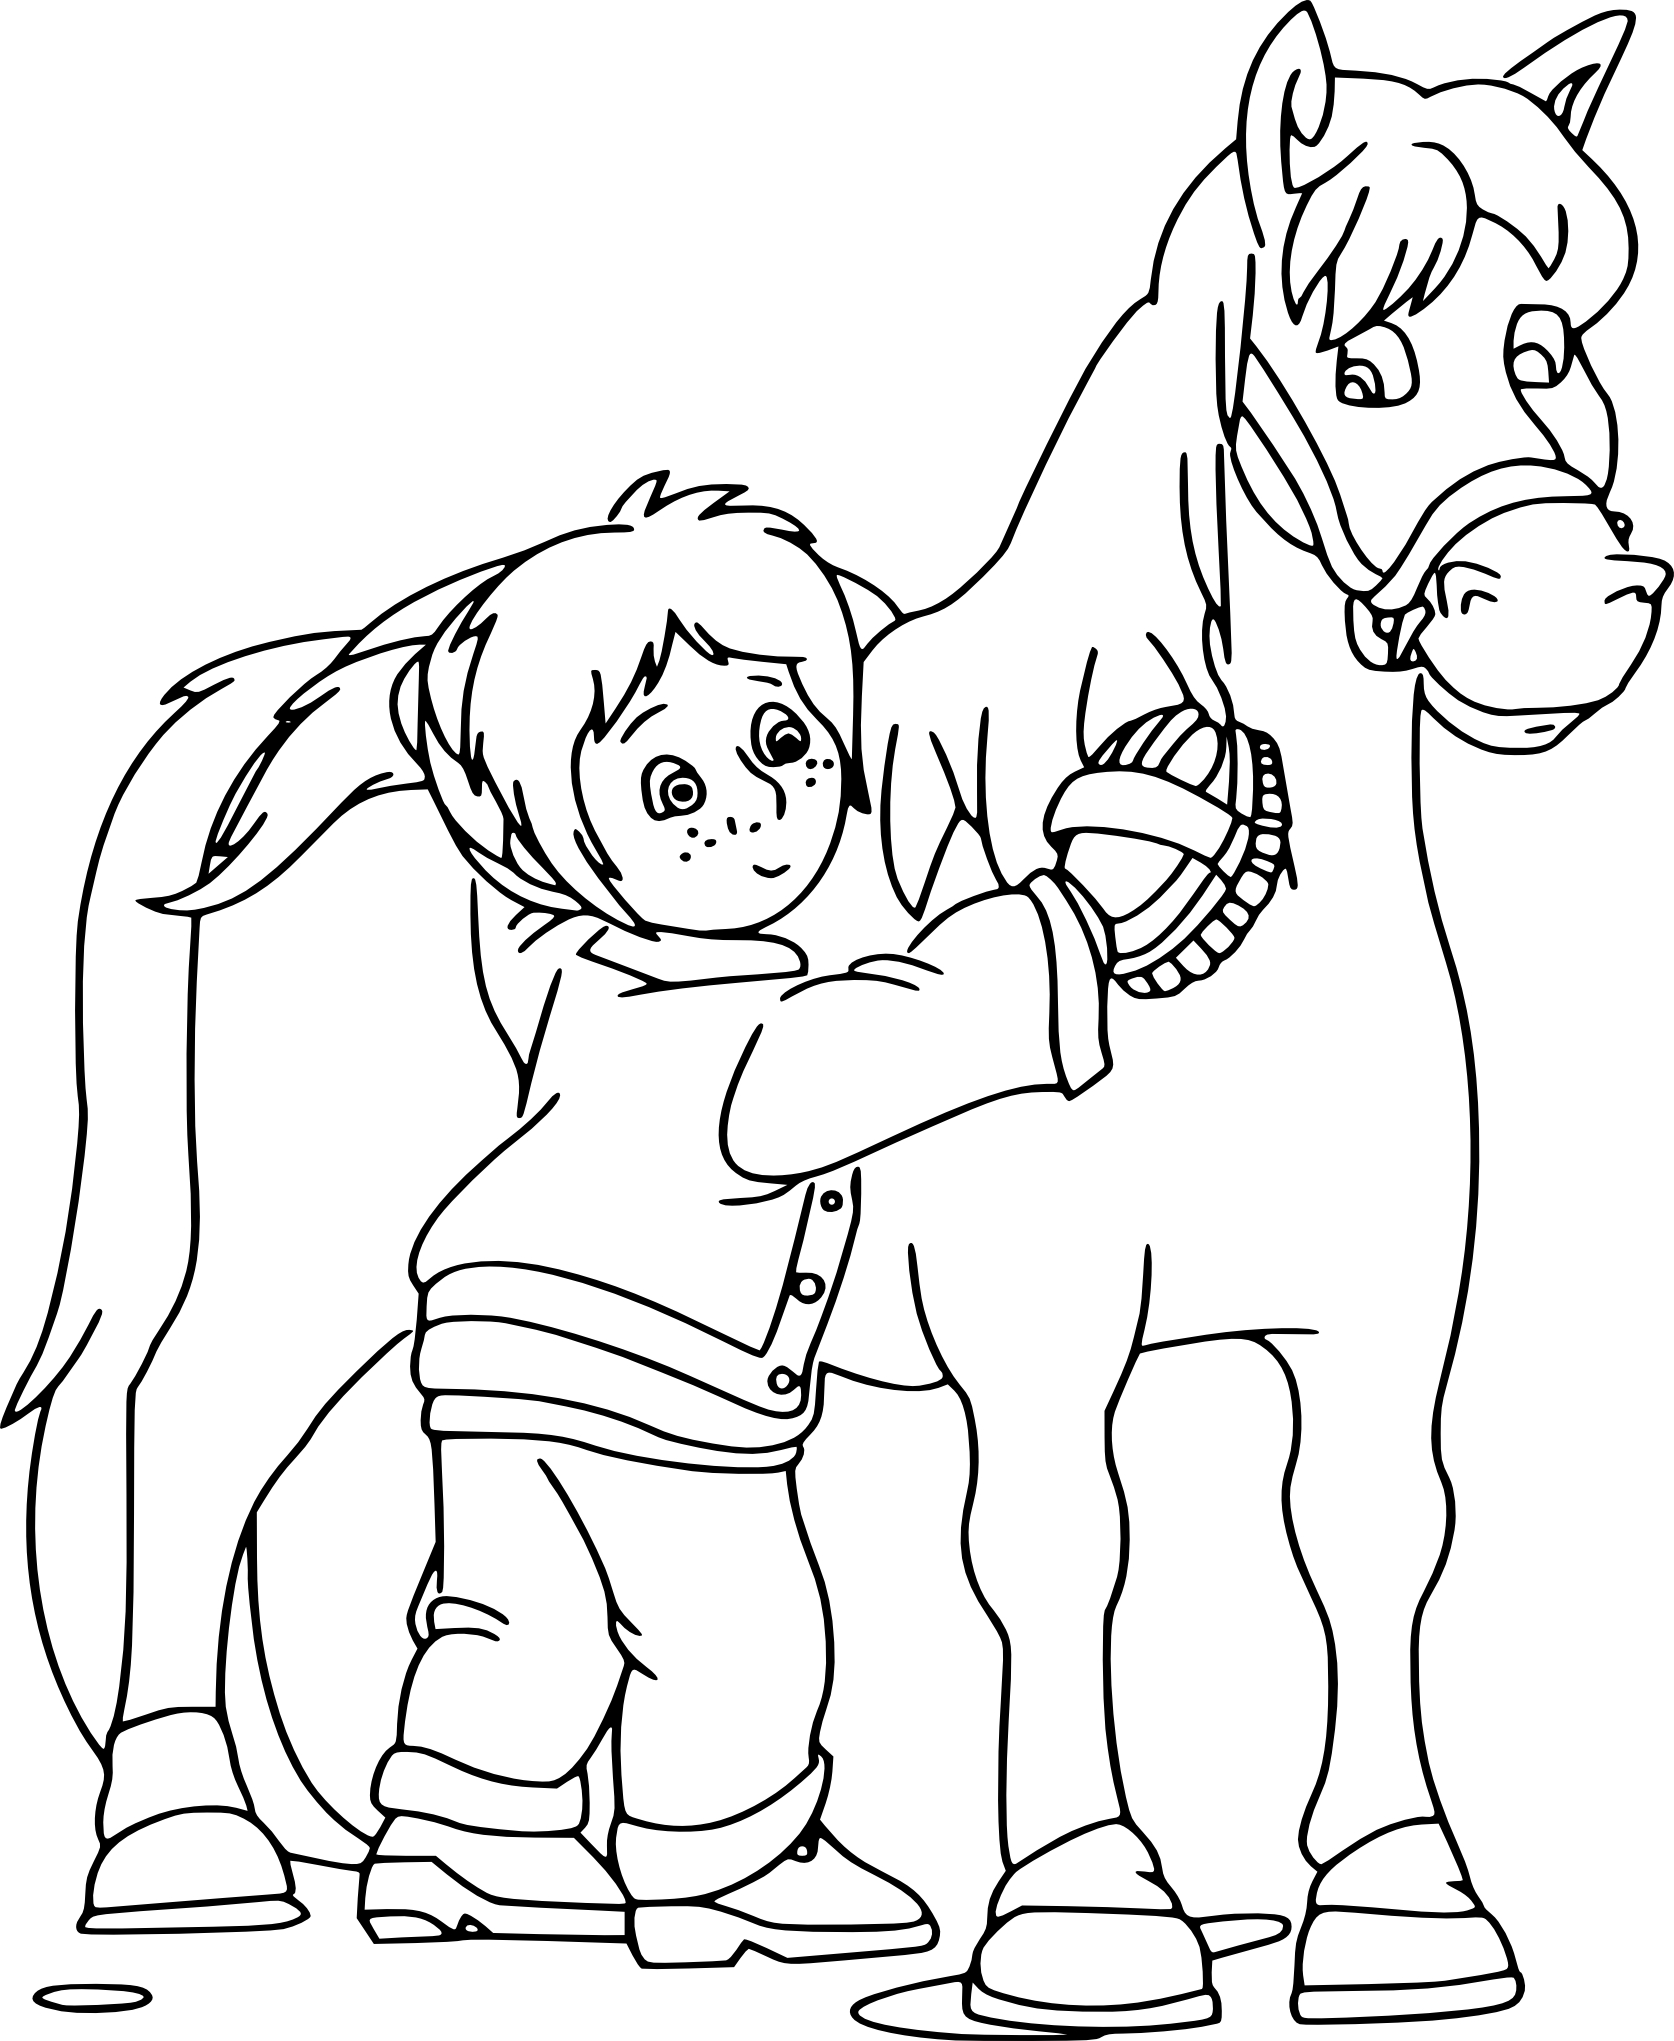 Coloriage fille cheval